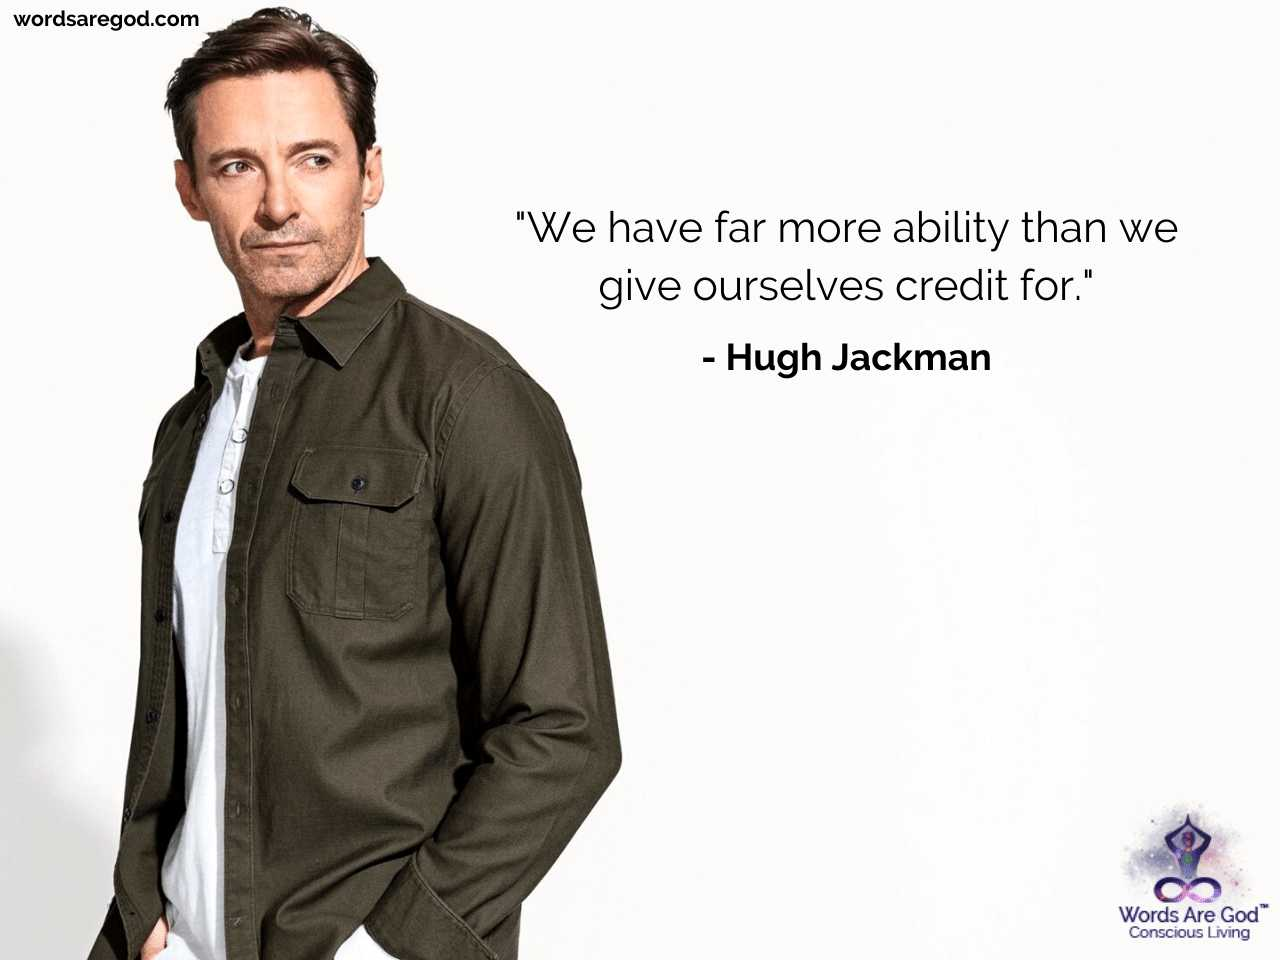 Hugh Jackman Inspirational Quotes